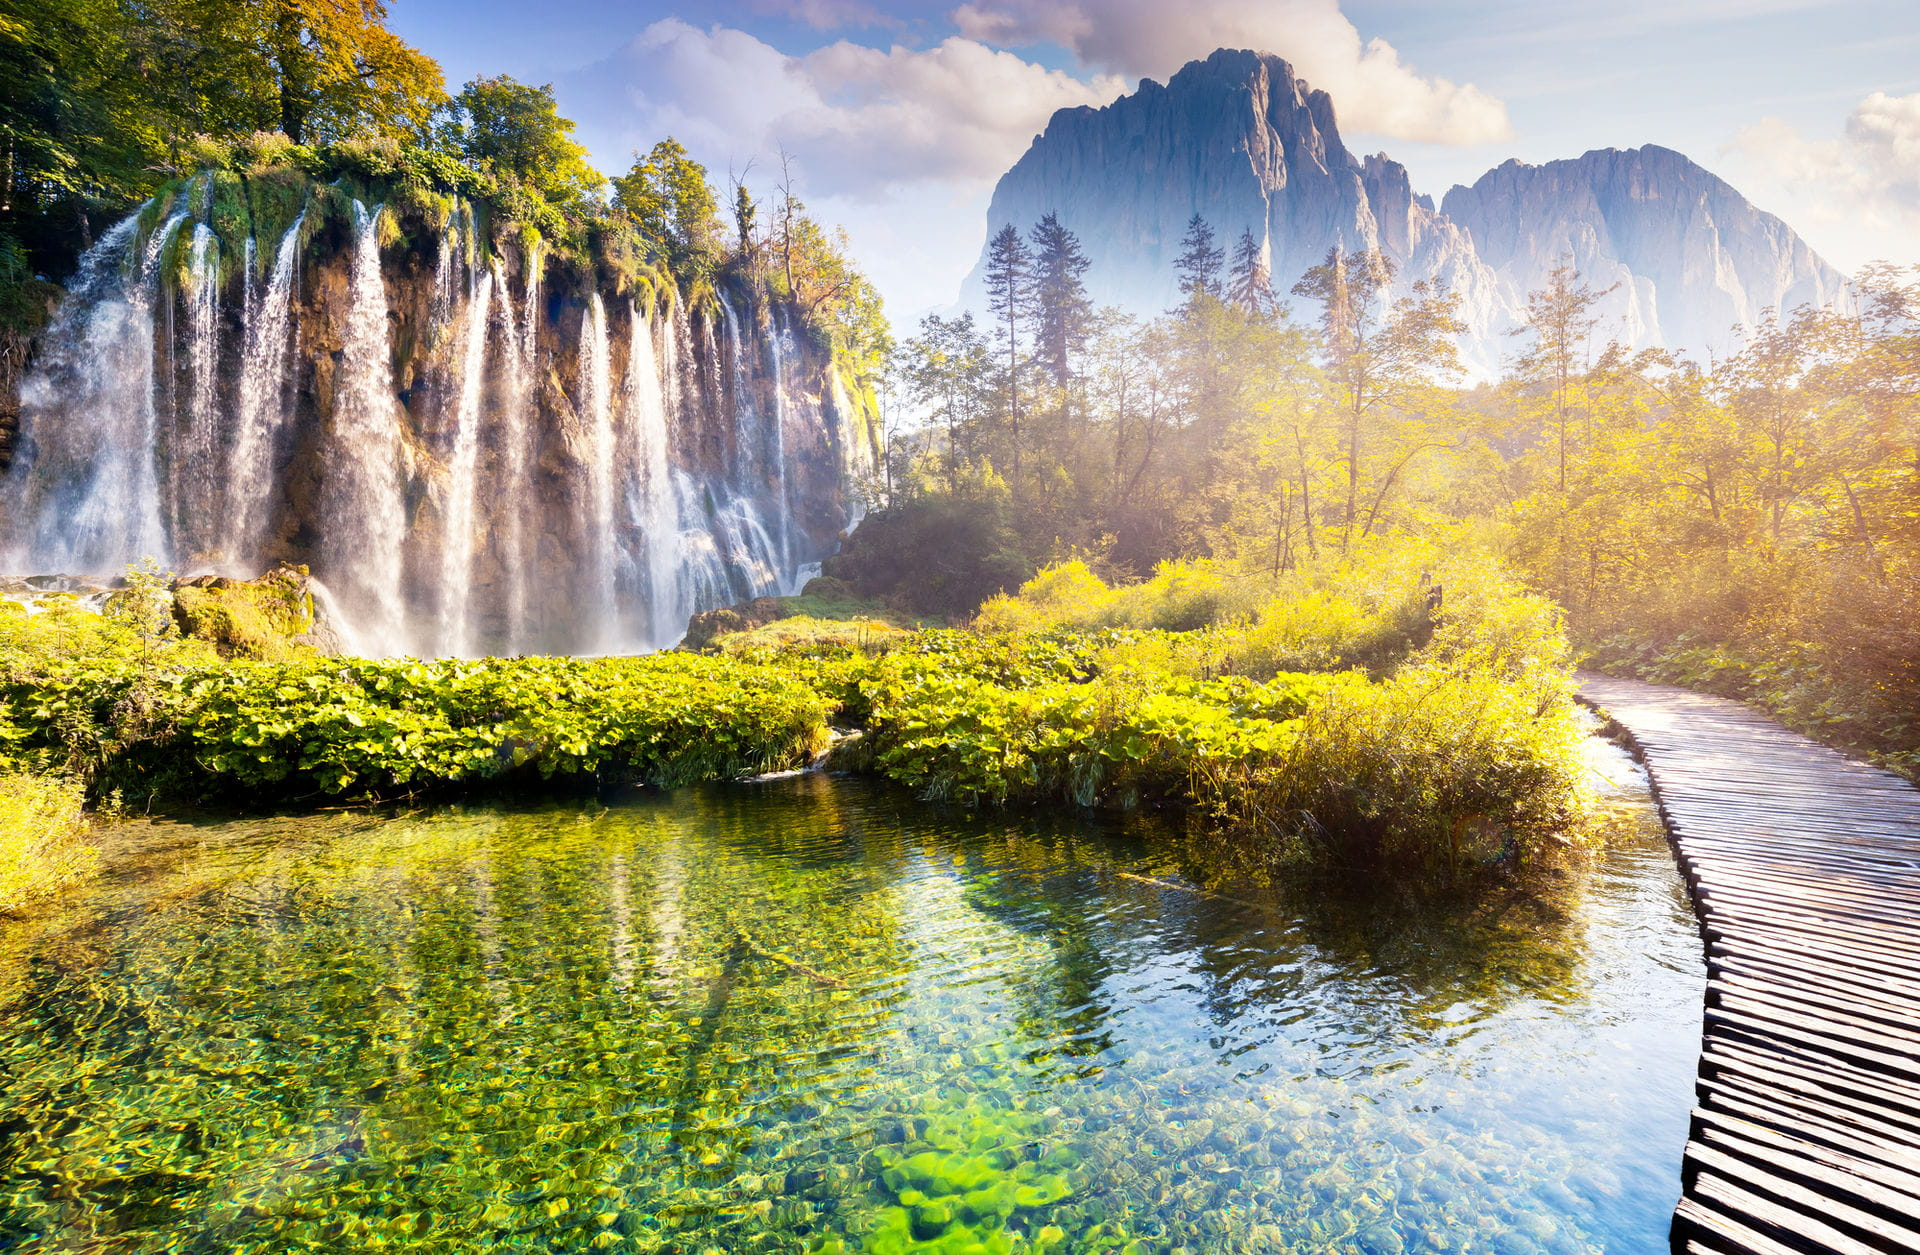 High quality hoto of Plitvice Lakes National Park - Croatia